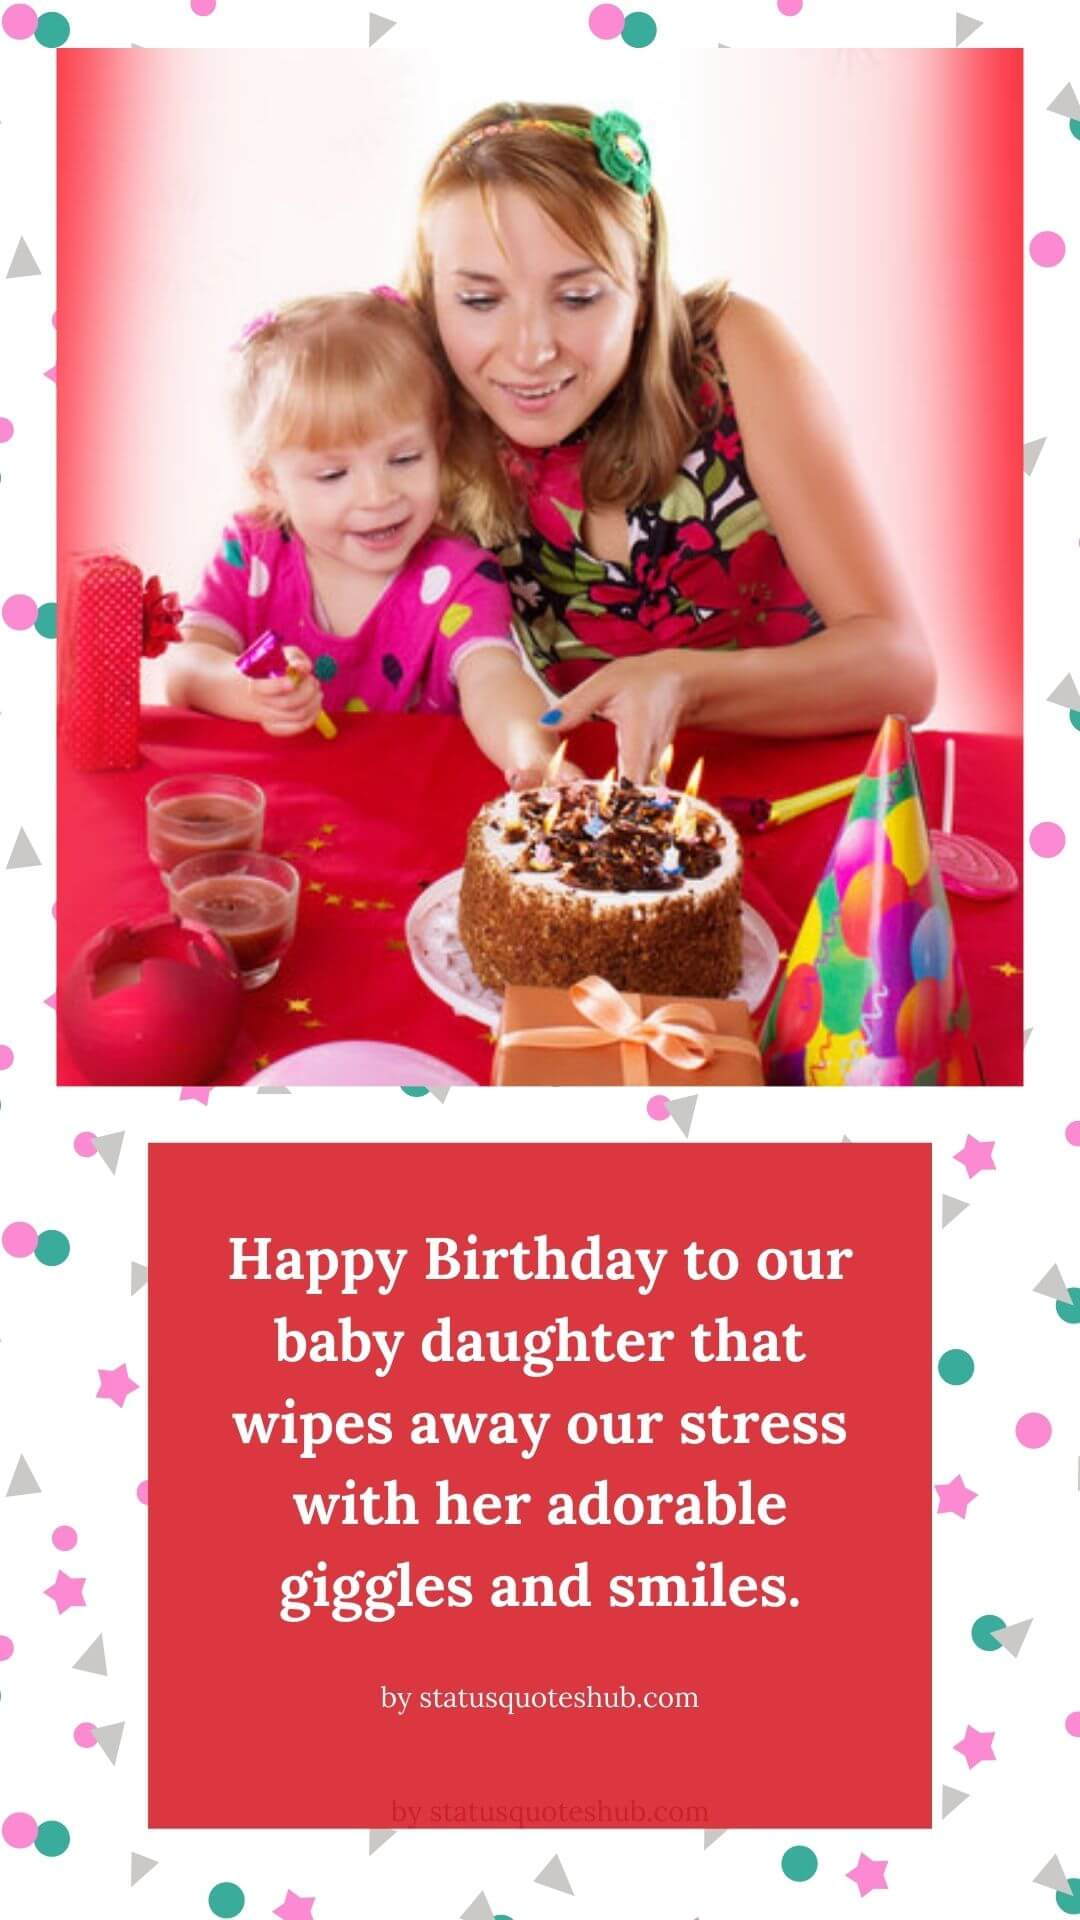 Quotes for baby girl birthday